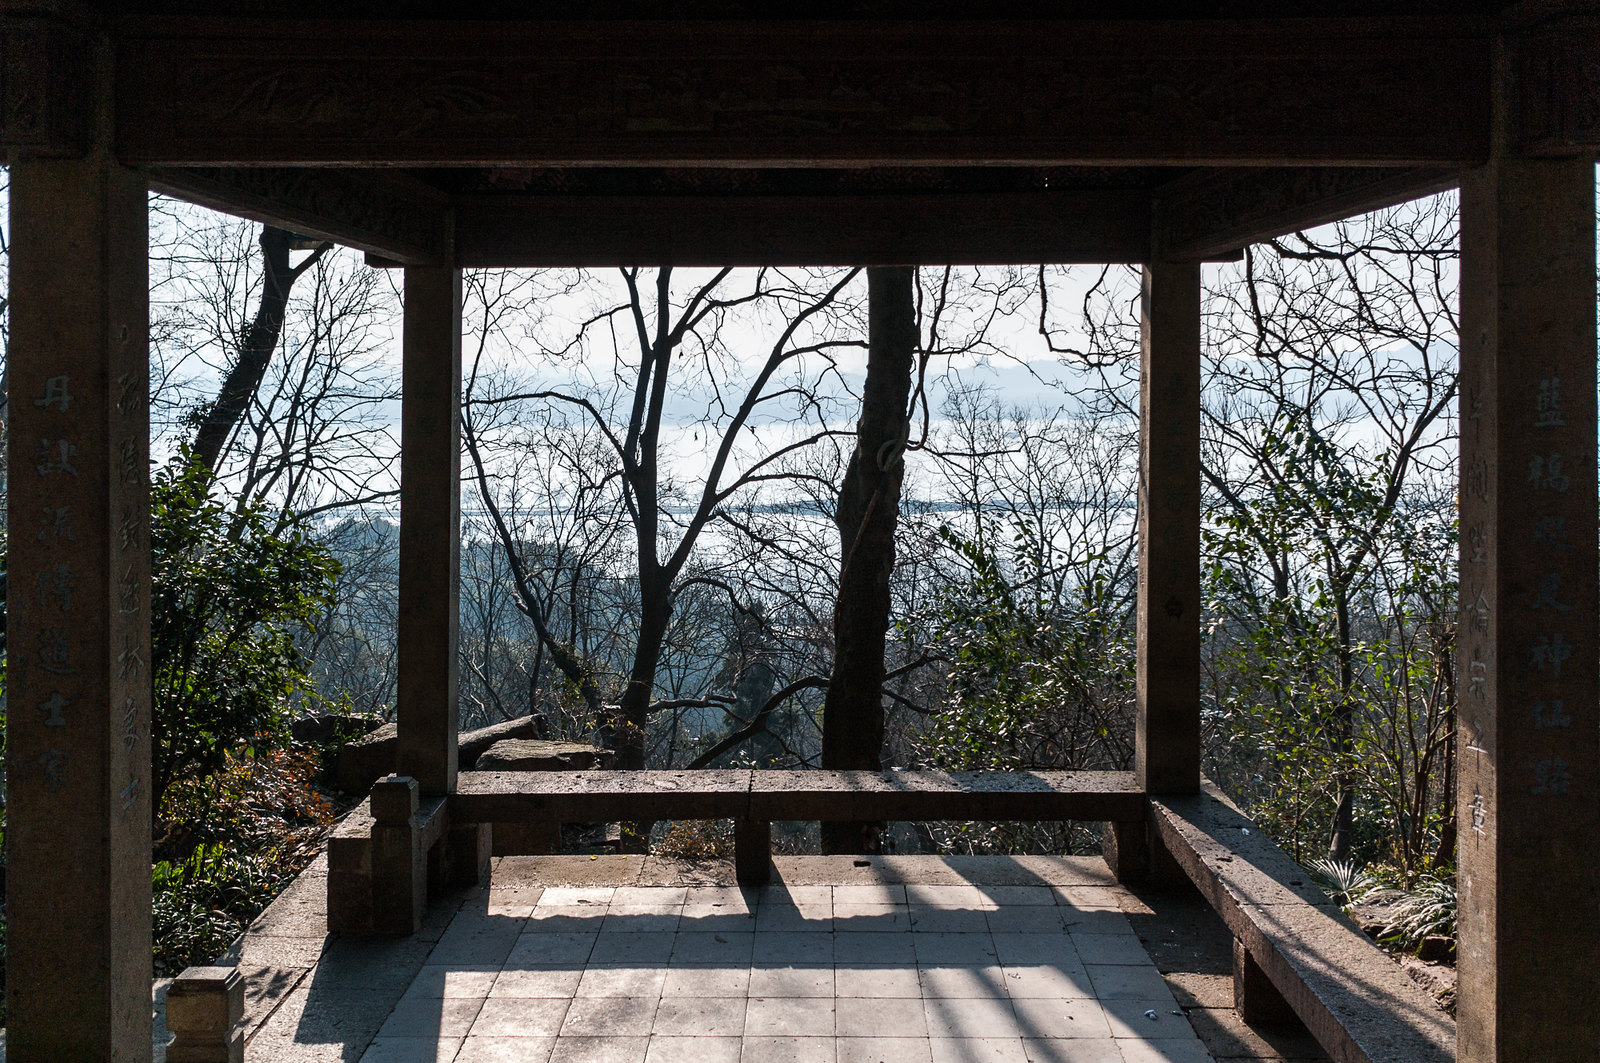 Baoshan mountain, Hangzhou